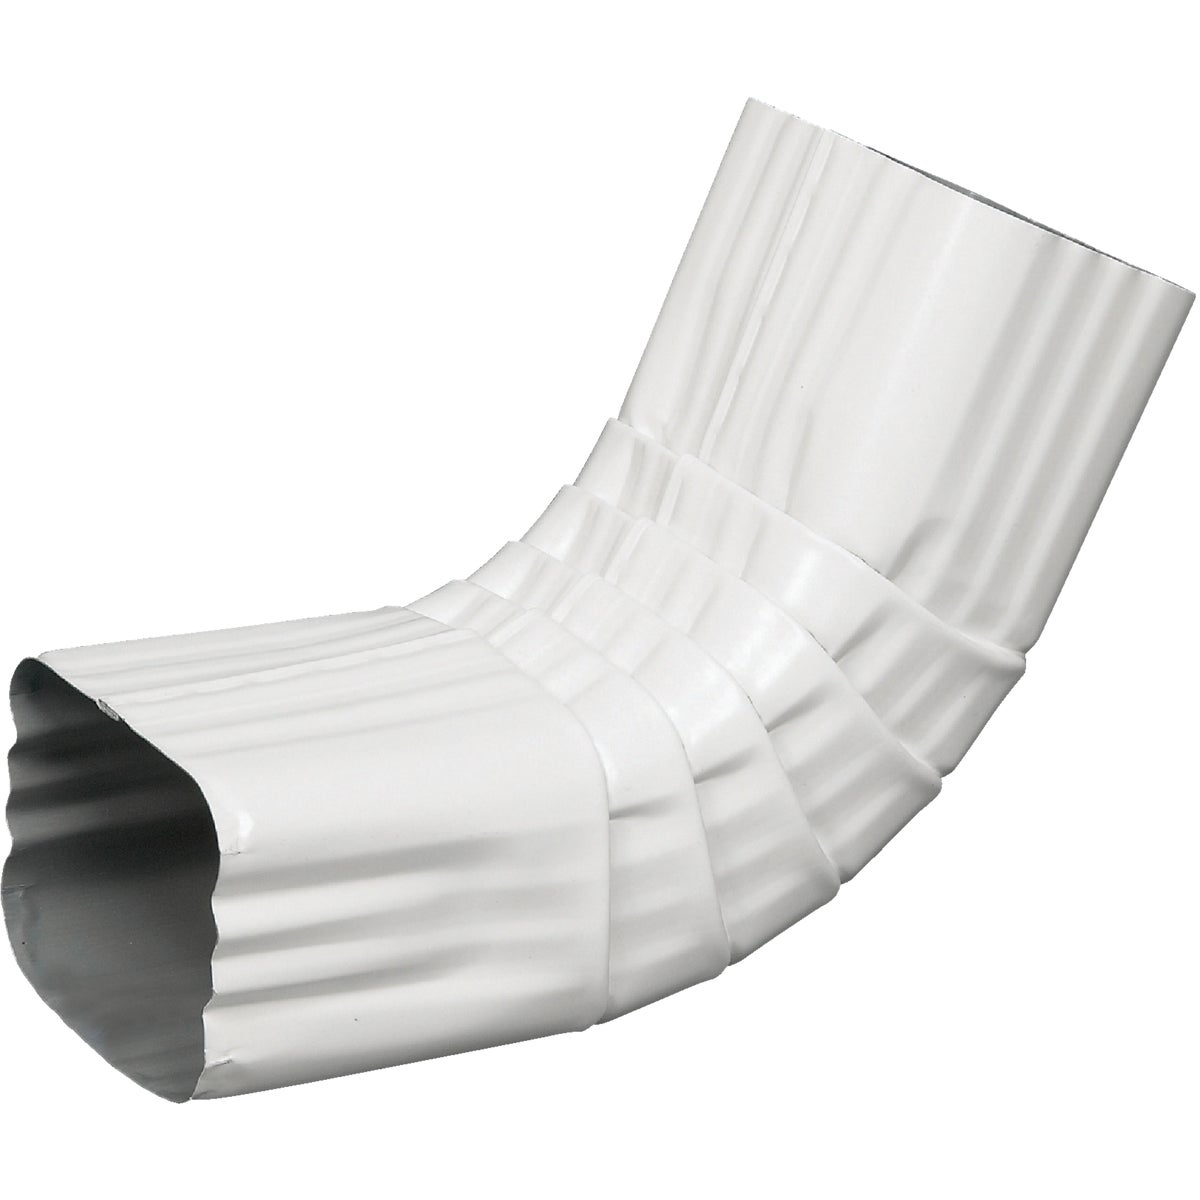 3X4 WHT ALUM A-ELBOW - 47264 by Amerimax Home Prod